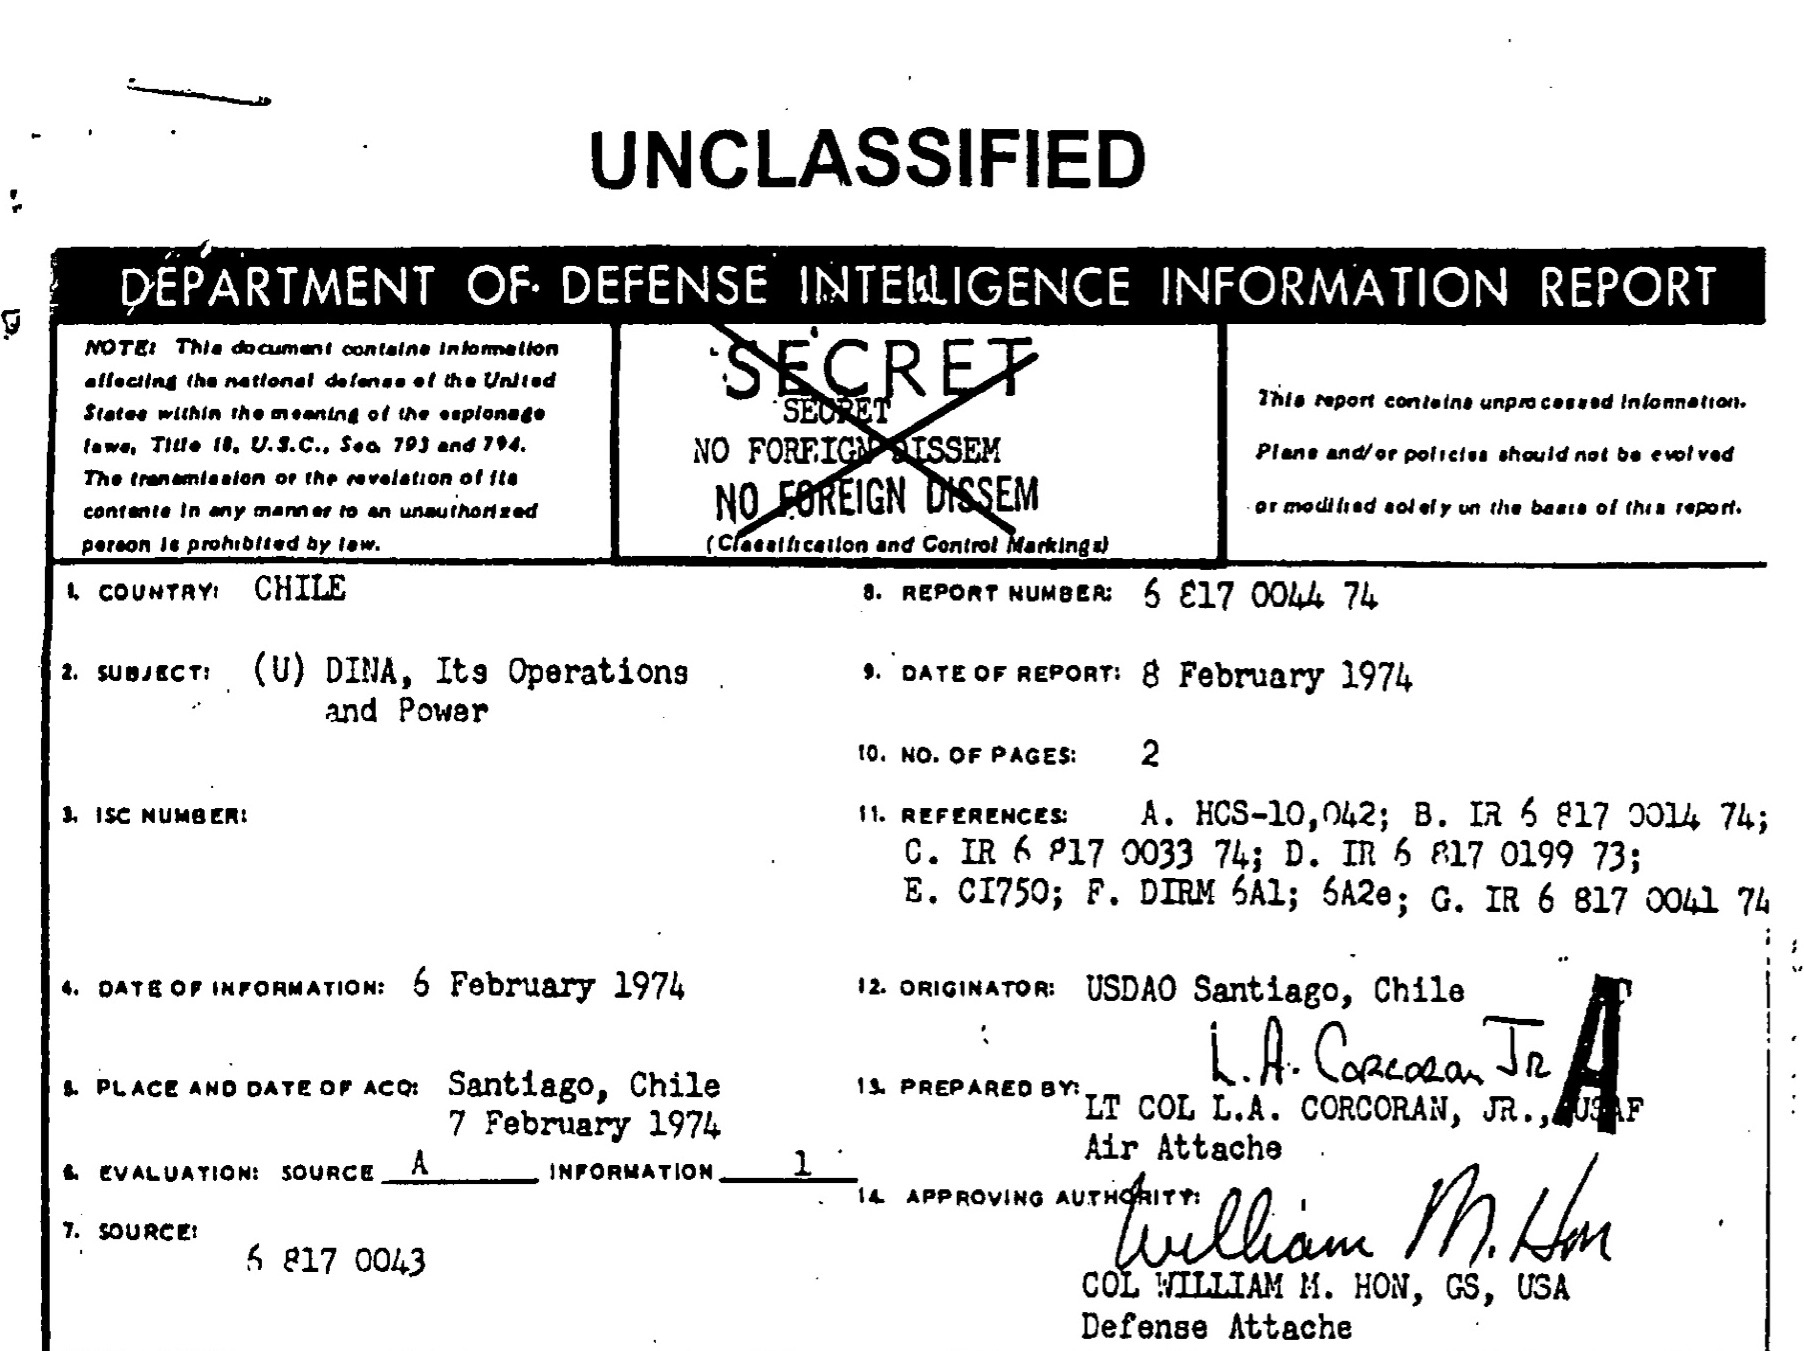 Unclassified report DINA operations and power